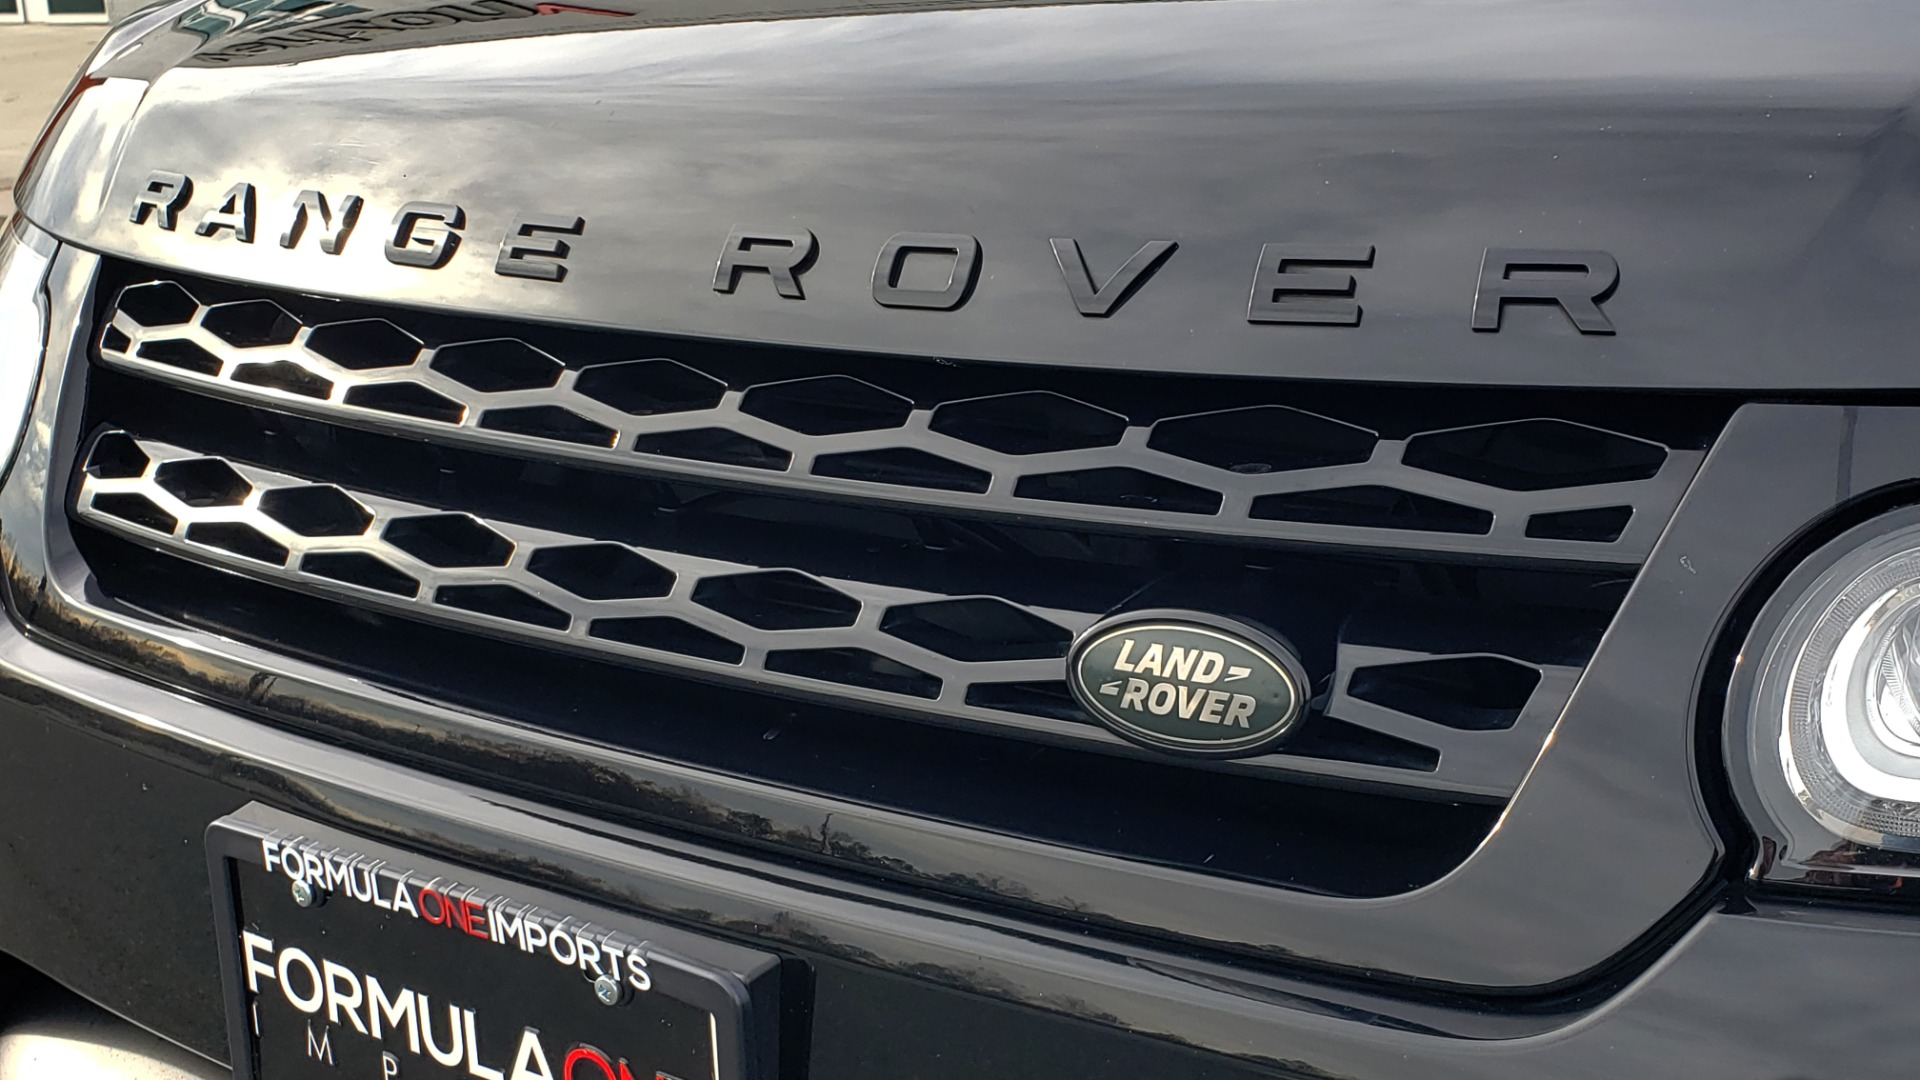 Used 2017 Land Rover RANGE ROVER SPORT HSE DYNAMIC / SC V6 / NAV / MERIDIAN / PANO-ROOF / REARVIEW for sale Sold at Formula Imports in Charlotte NC 28227 126